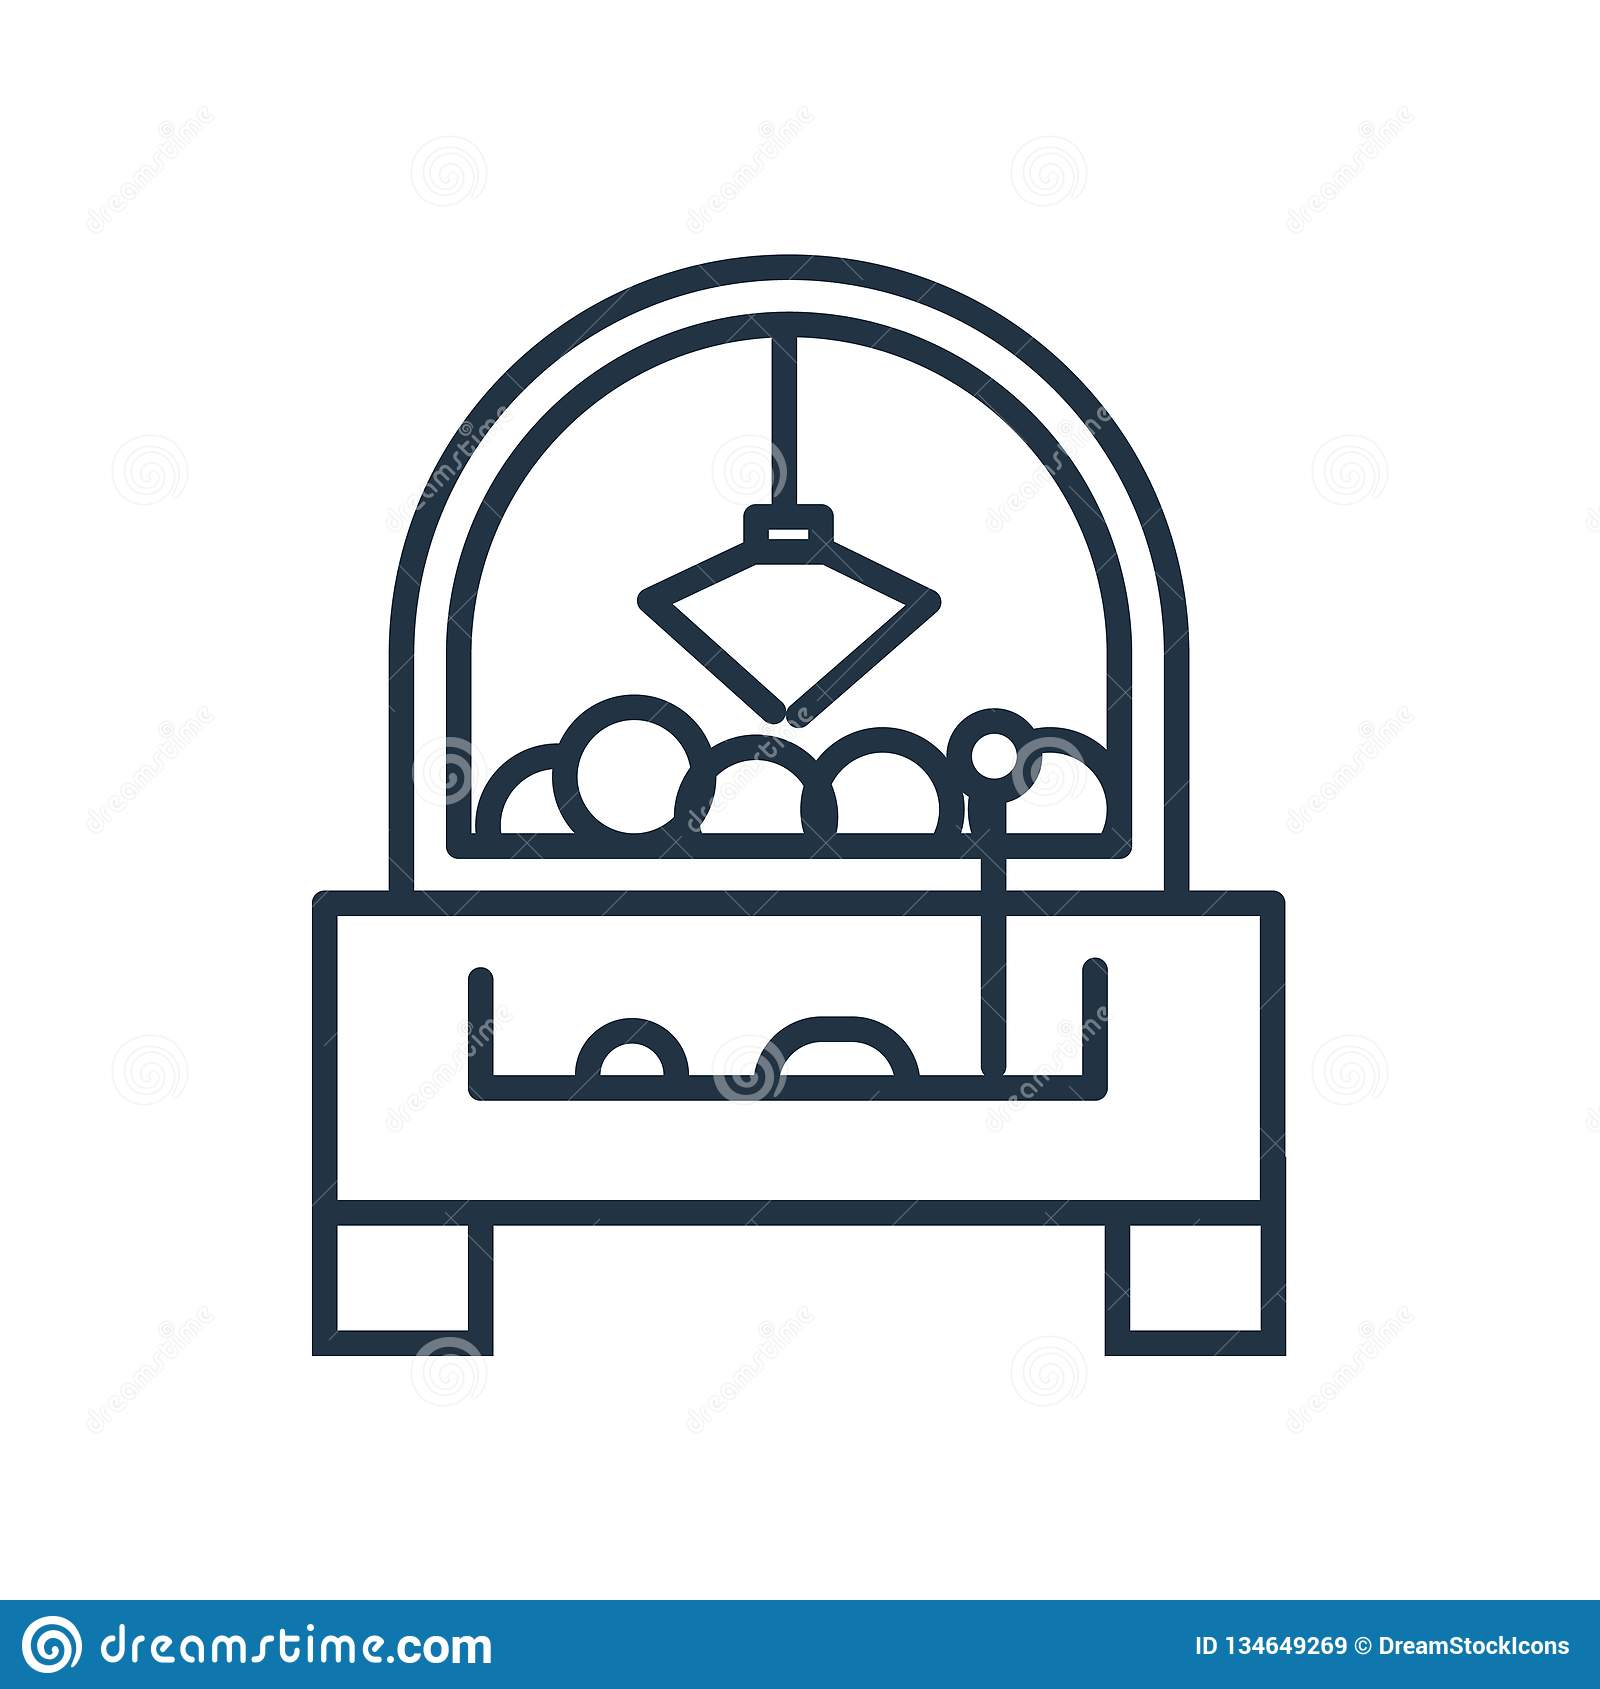 Claw machine icon vector isolated on white background, Claw machine sign